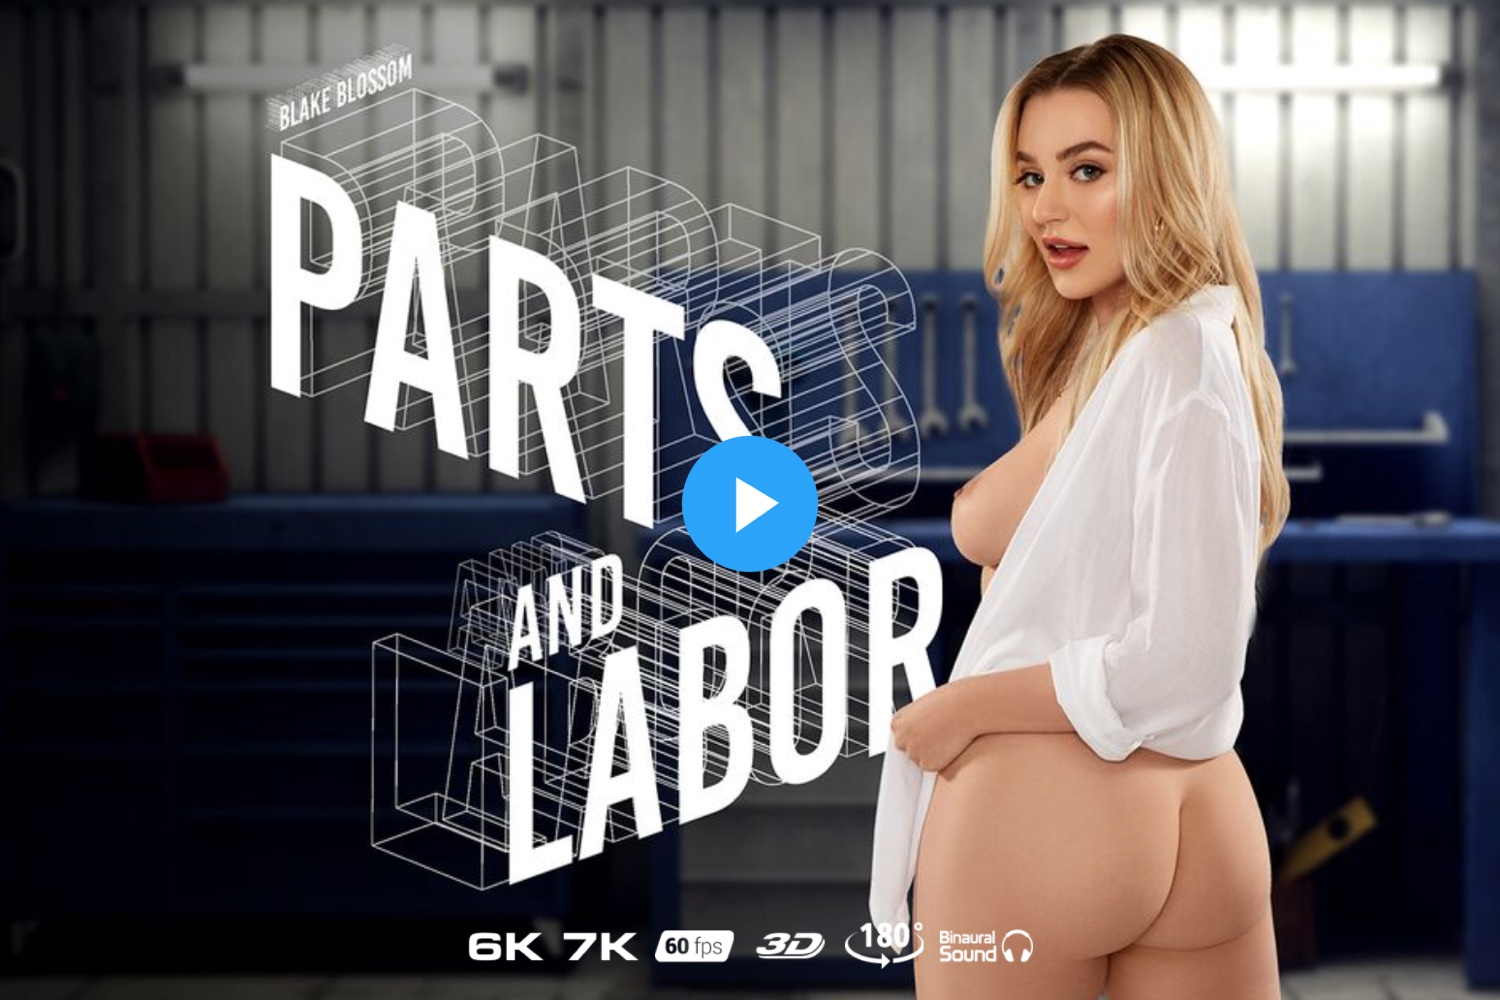 Parts and Labor - Blake Blossom VR Porn - Blake Blossom Virtual Reality Porn